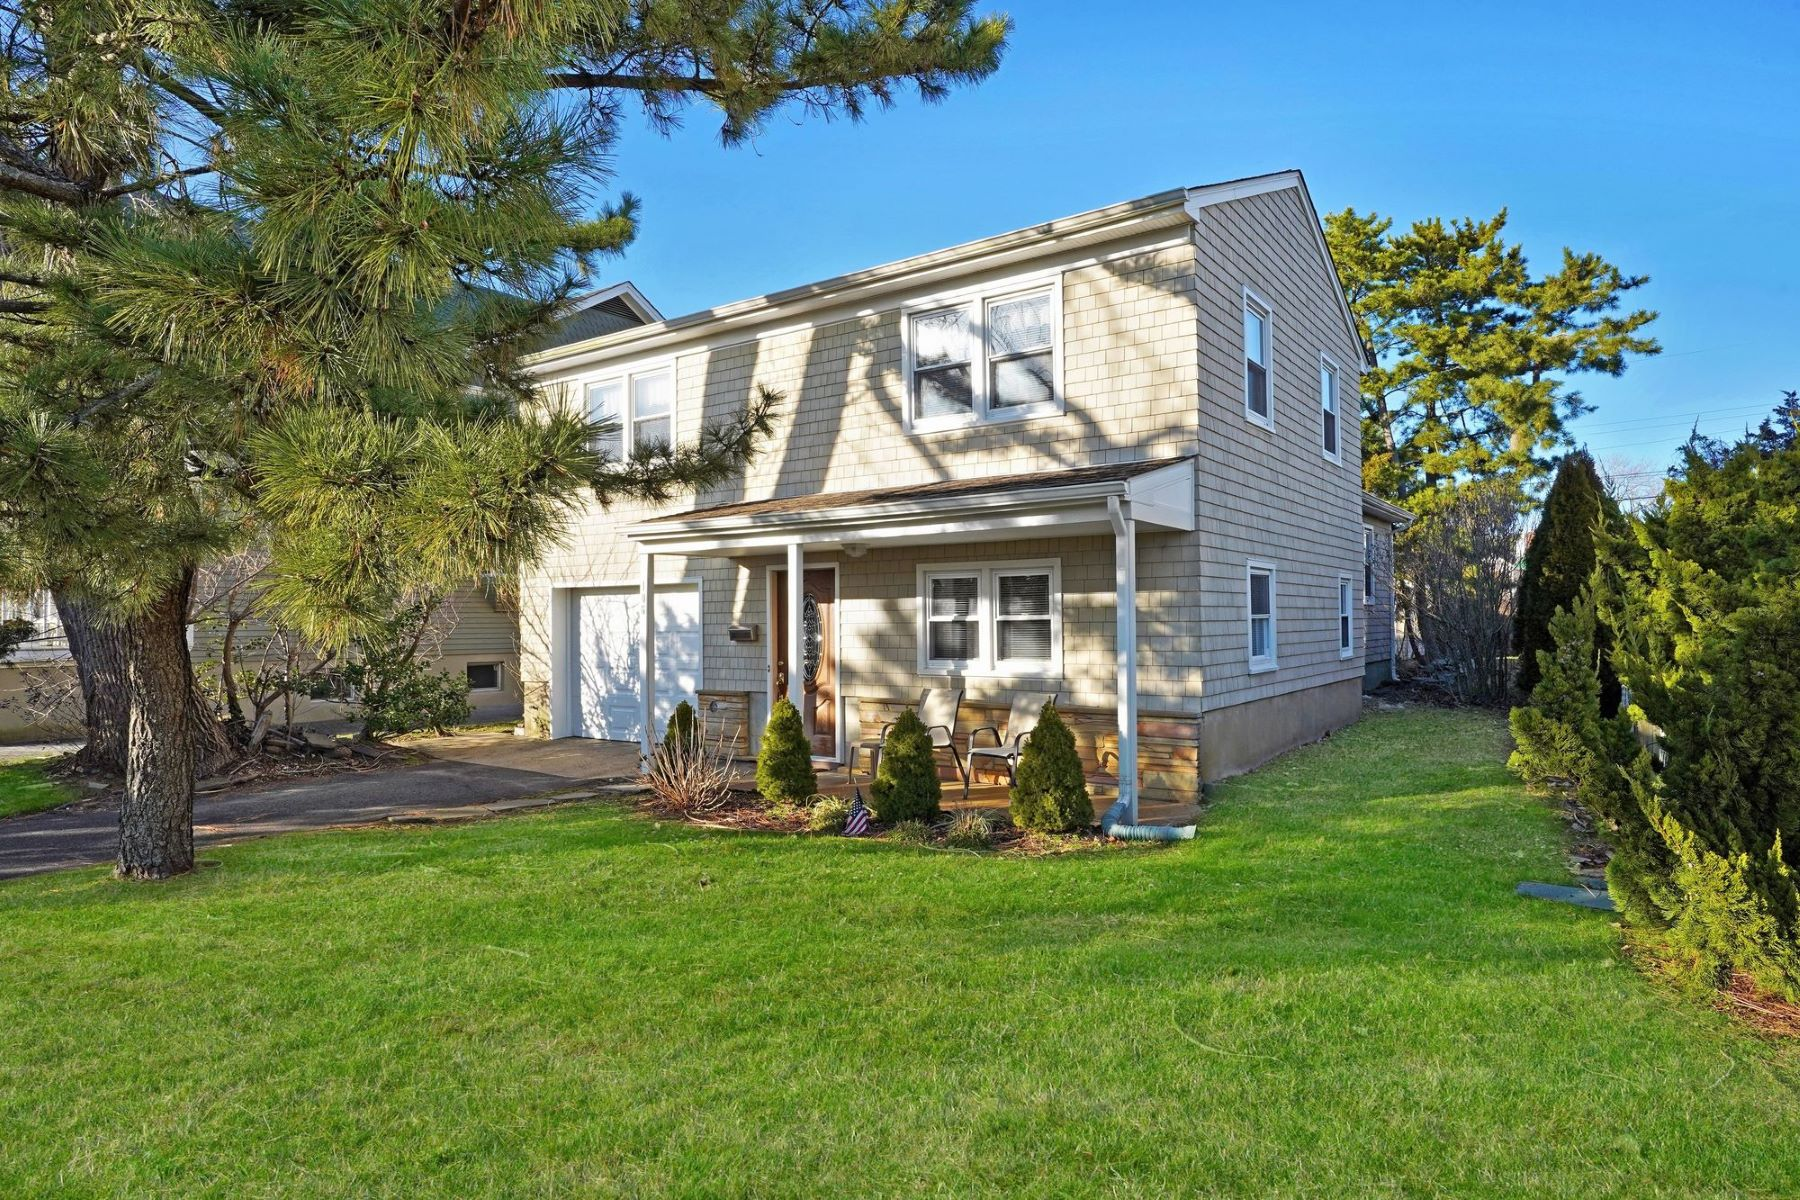 Single Family Homes for Sale at Charming Split Level 106 York Avenue Spring Lake, New Jersey 07762 United States